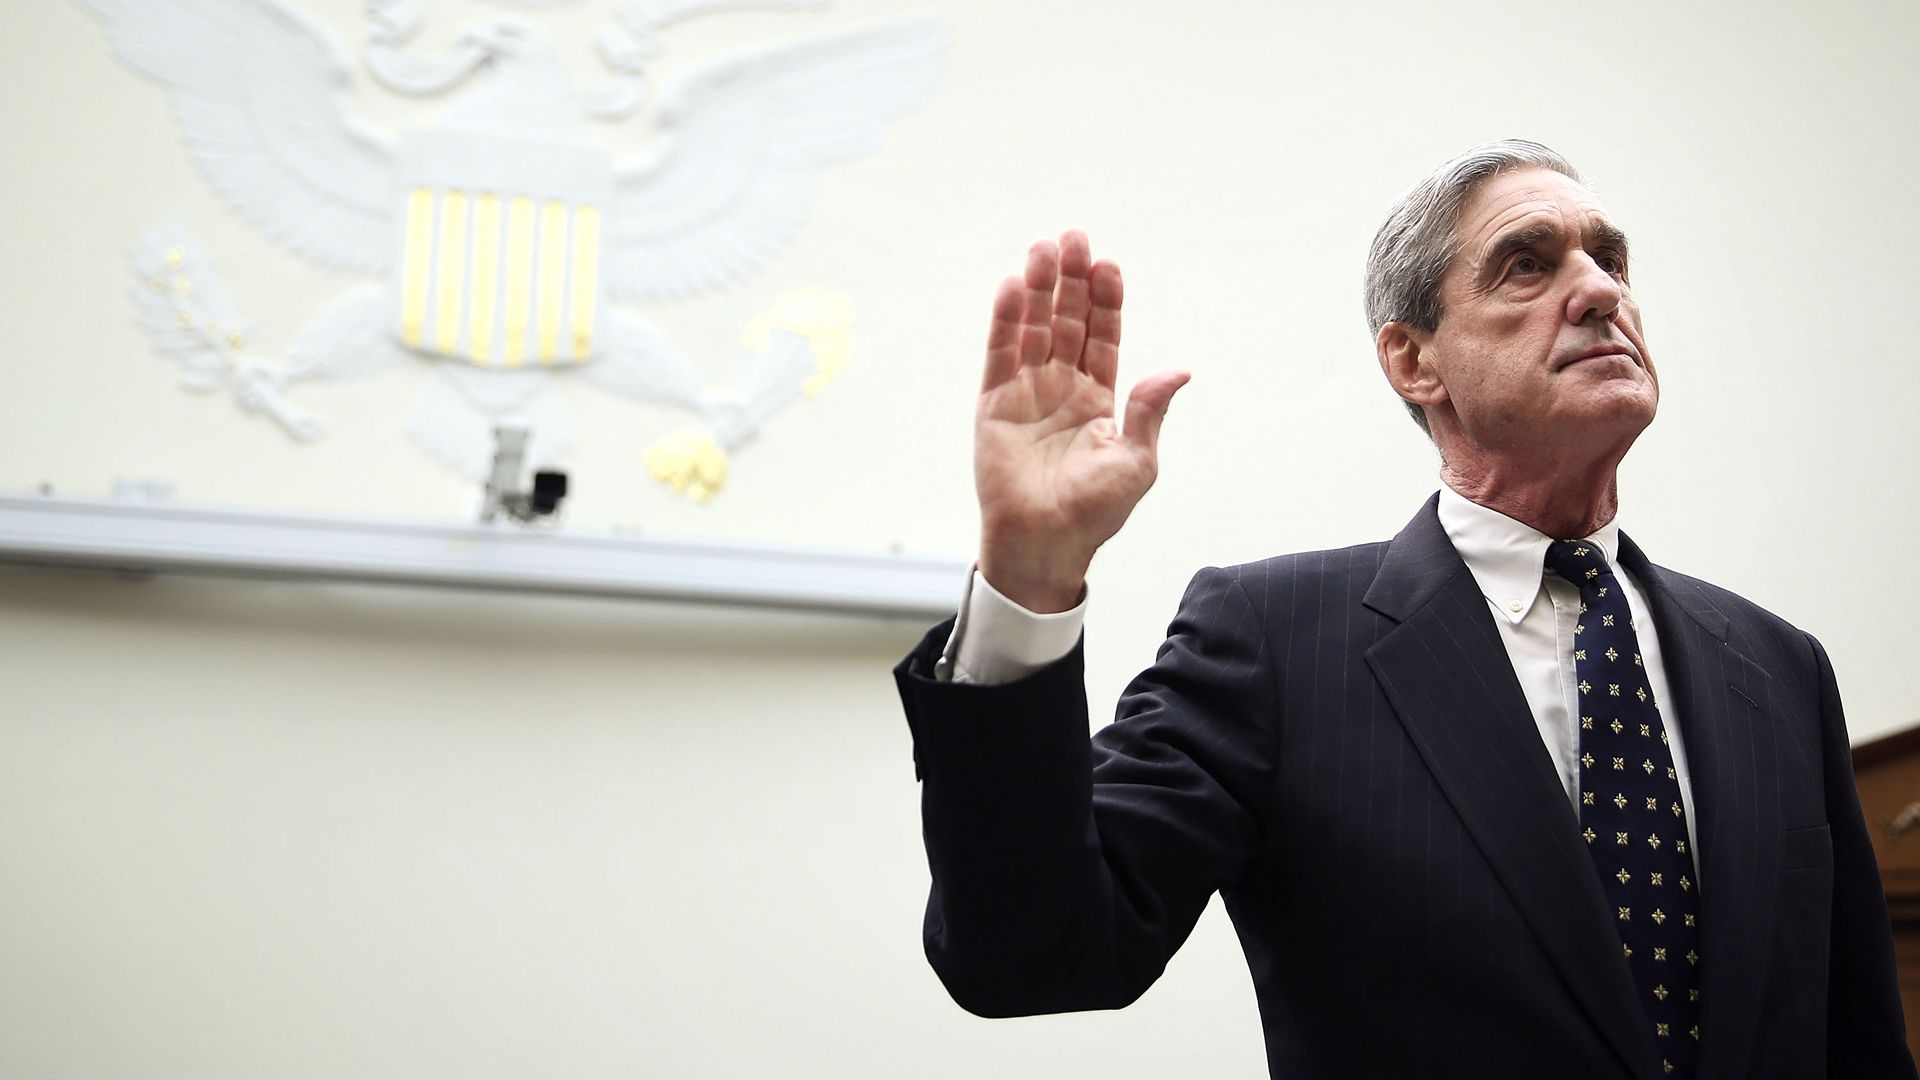 Robert Mueller submits long-awaited report on Russia investigation